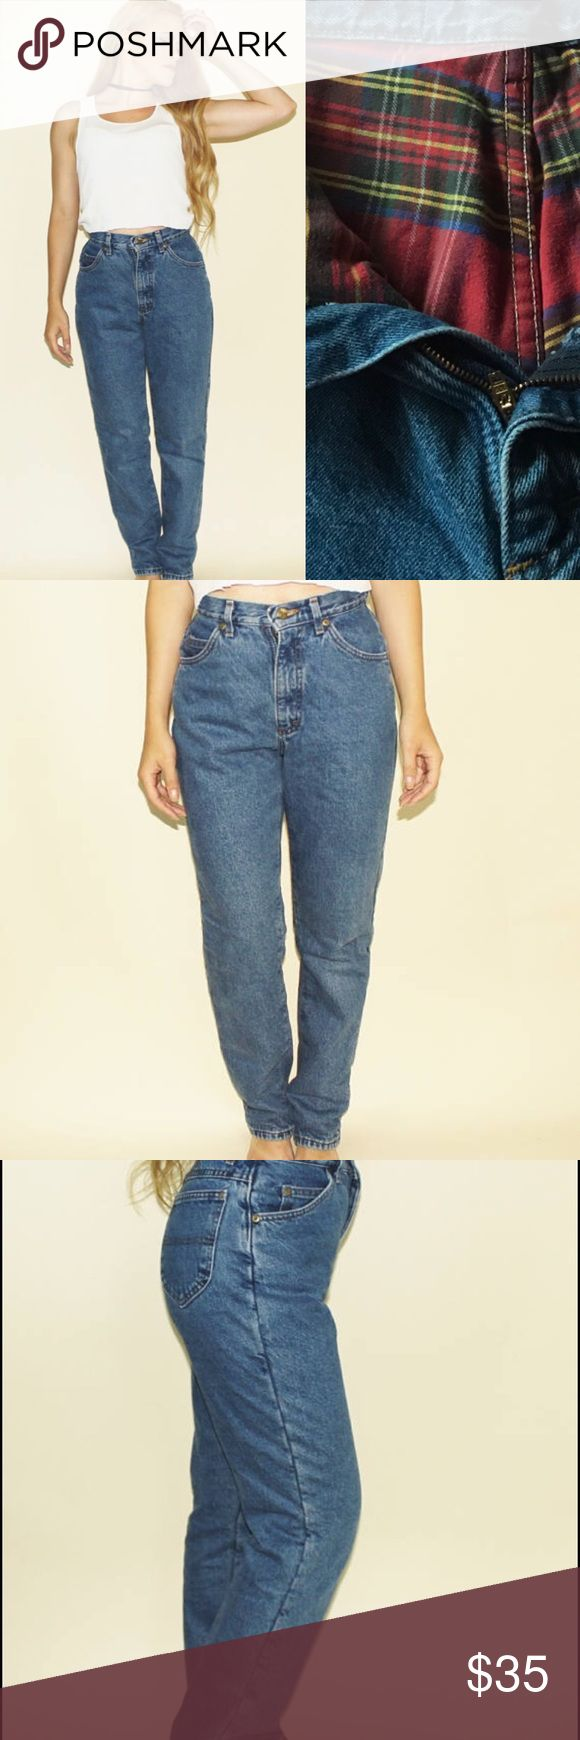 """Vintage 90s L.L. Bean Flannel Lined Jeans Denim 6 